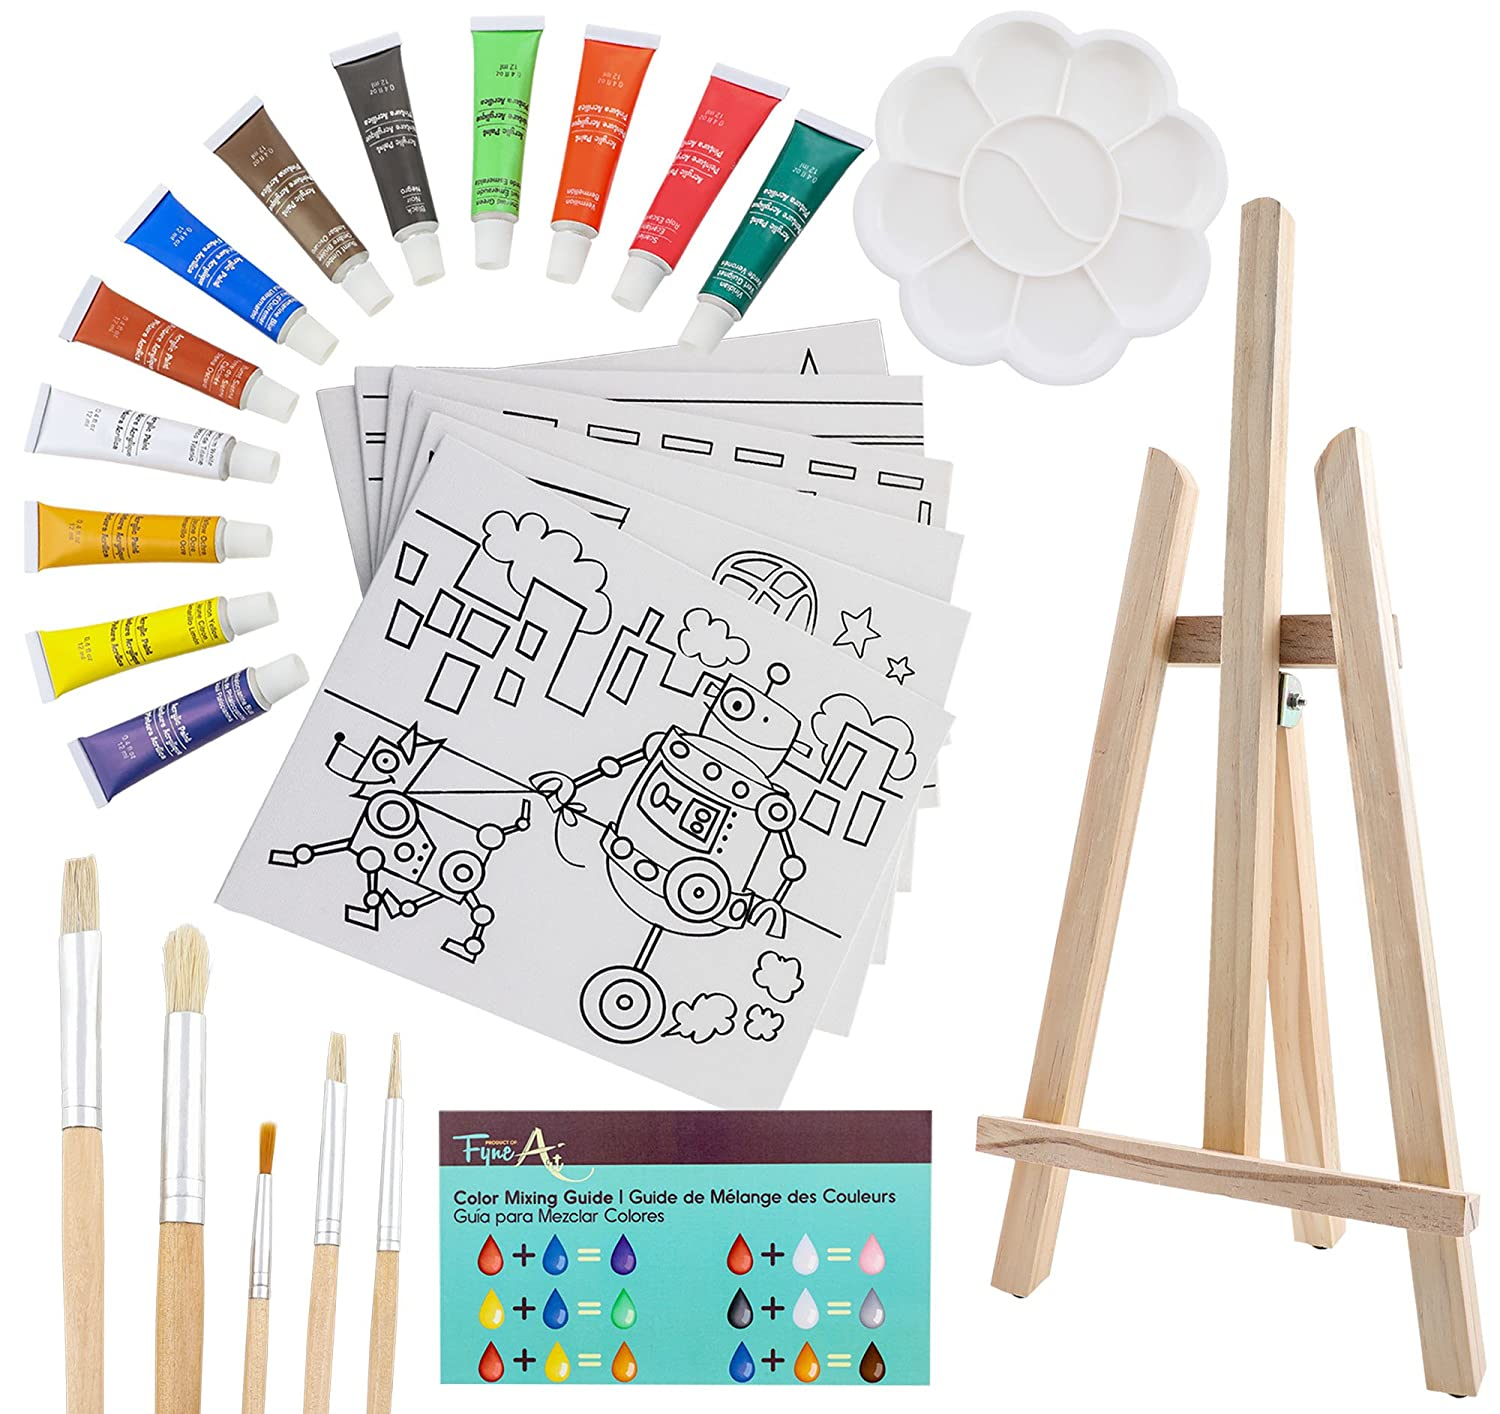 26-Piece Kids Canvas Painting Set - Arts and Crafts Easel Supplies Kit - Includes Wood Art Easel, Kid Canvases, Acrylic Paint, Kid Paint Brushes, Palette and More! Ages 5 and Up, by FyneArt 4336952689